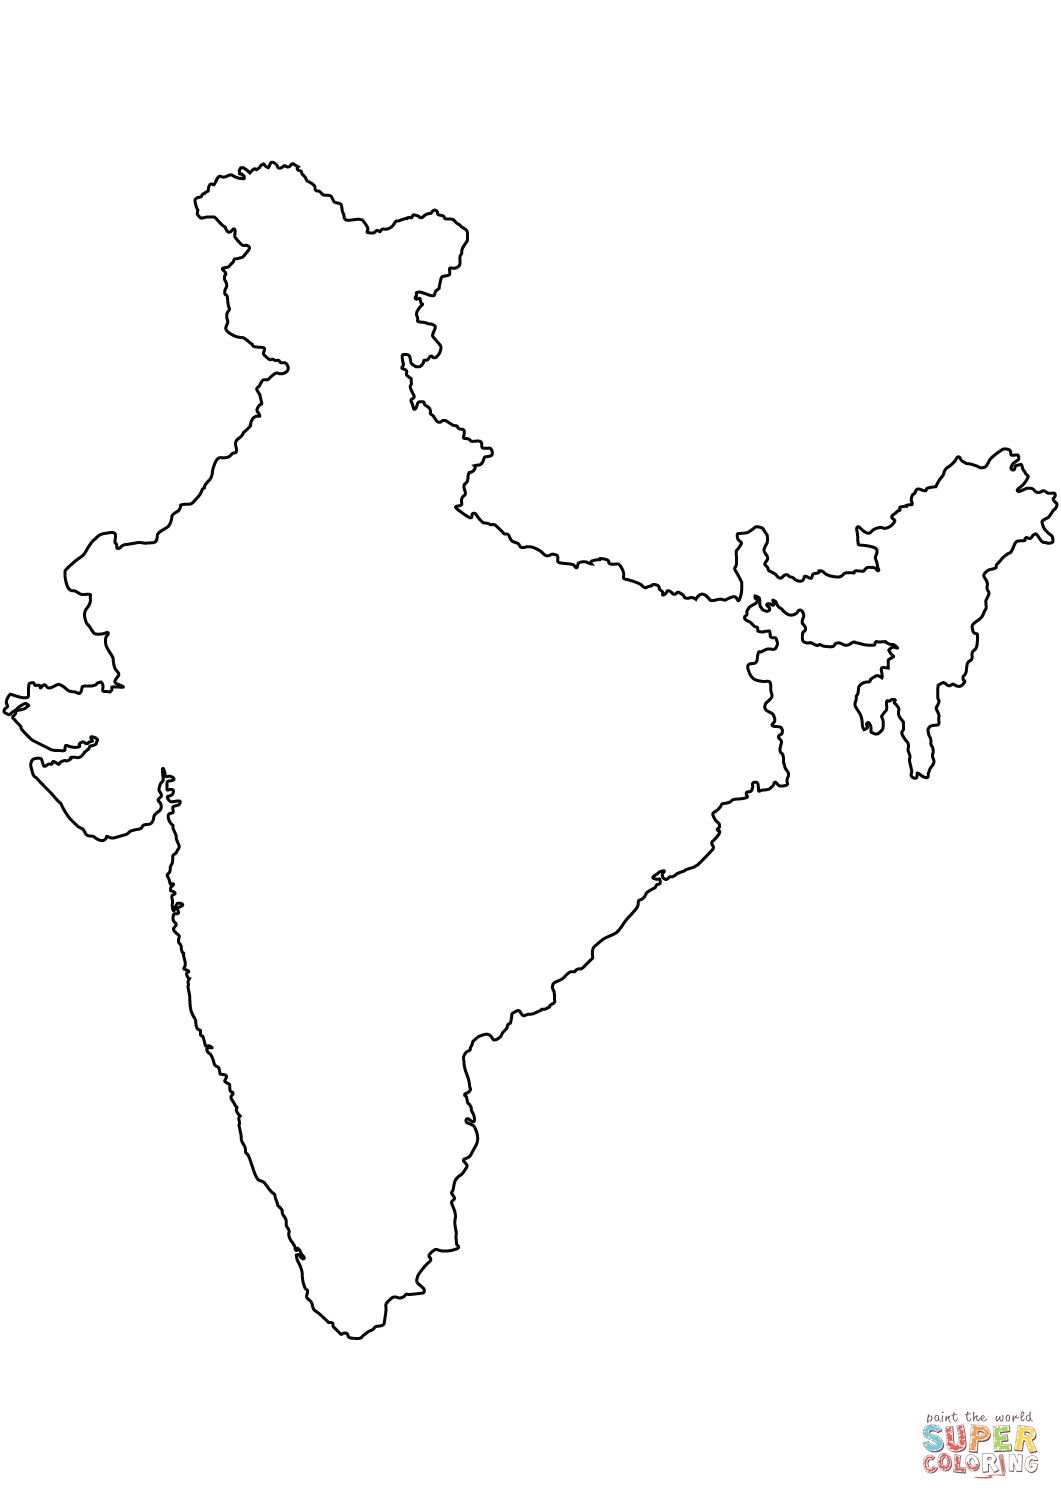 India map drawing at getdrawings free for personal use india india map drawing 18 india map